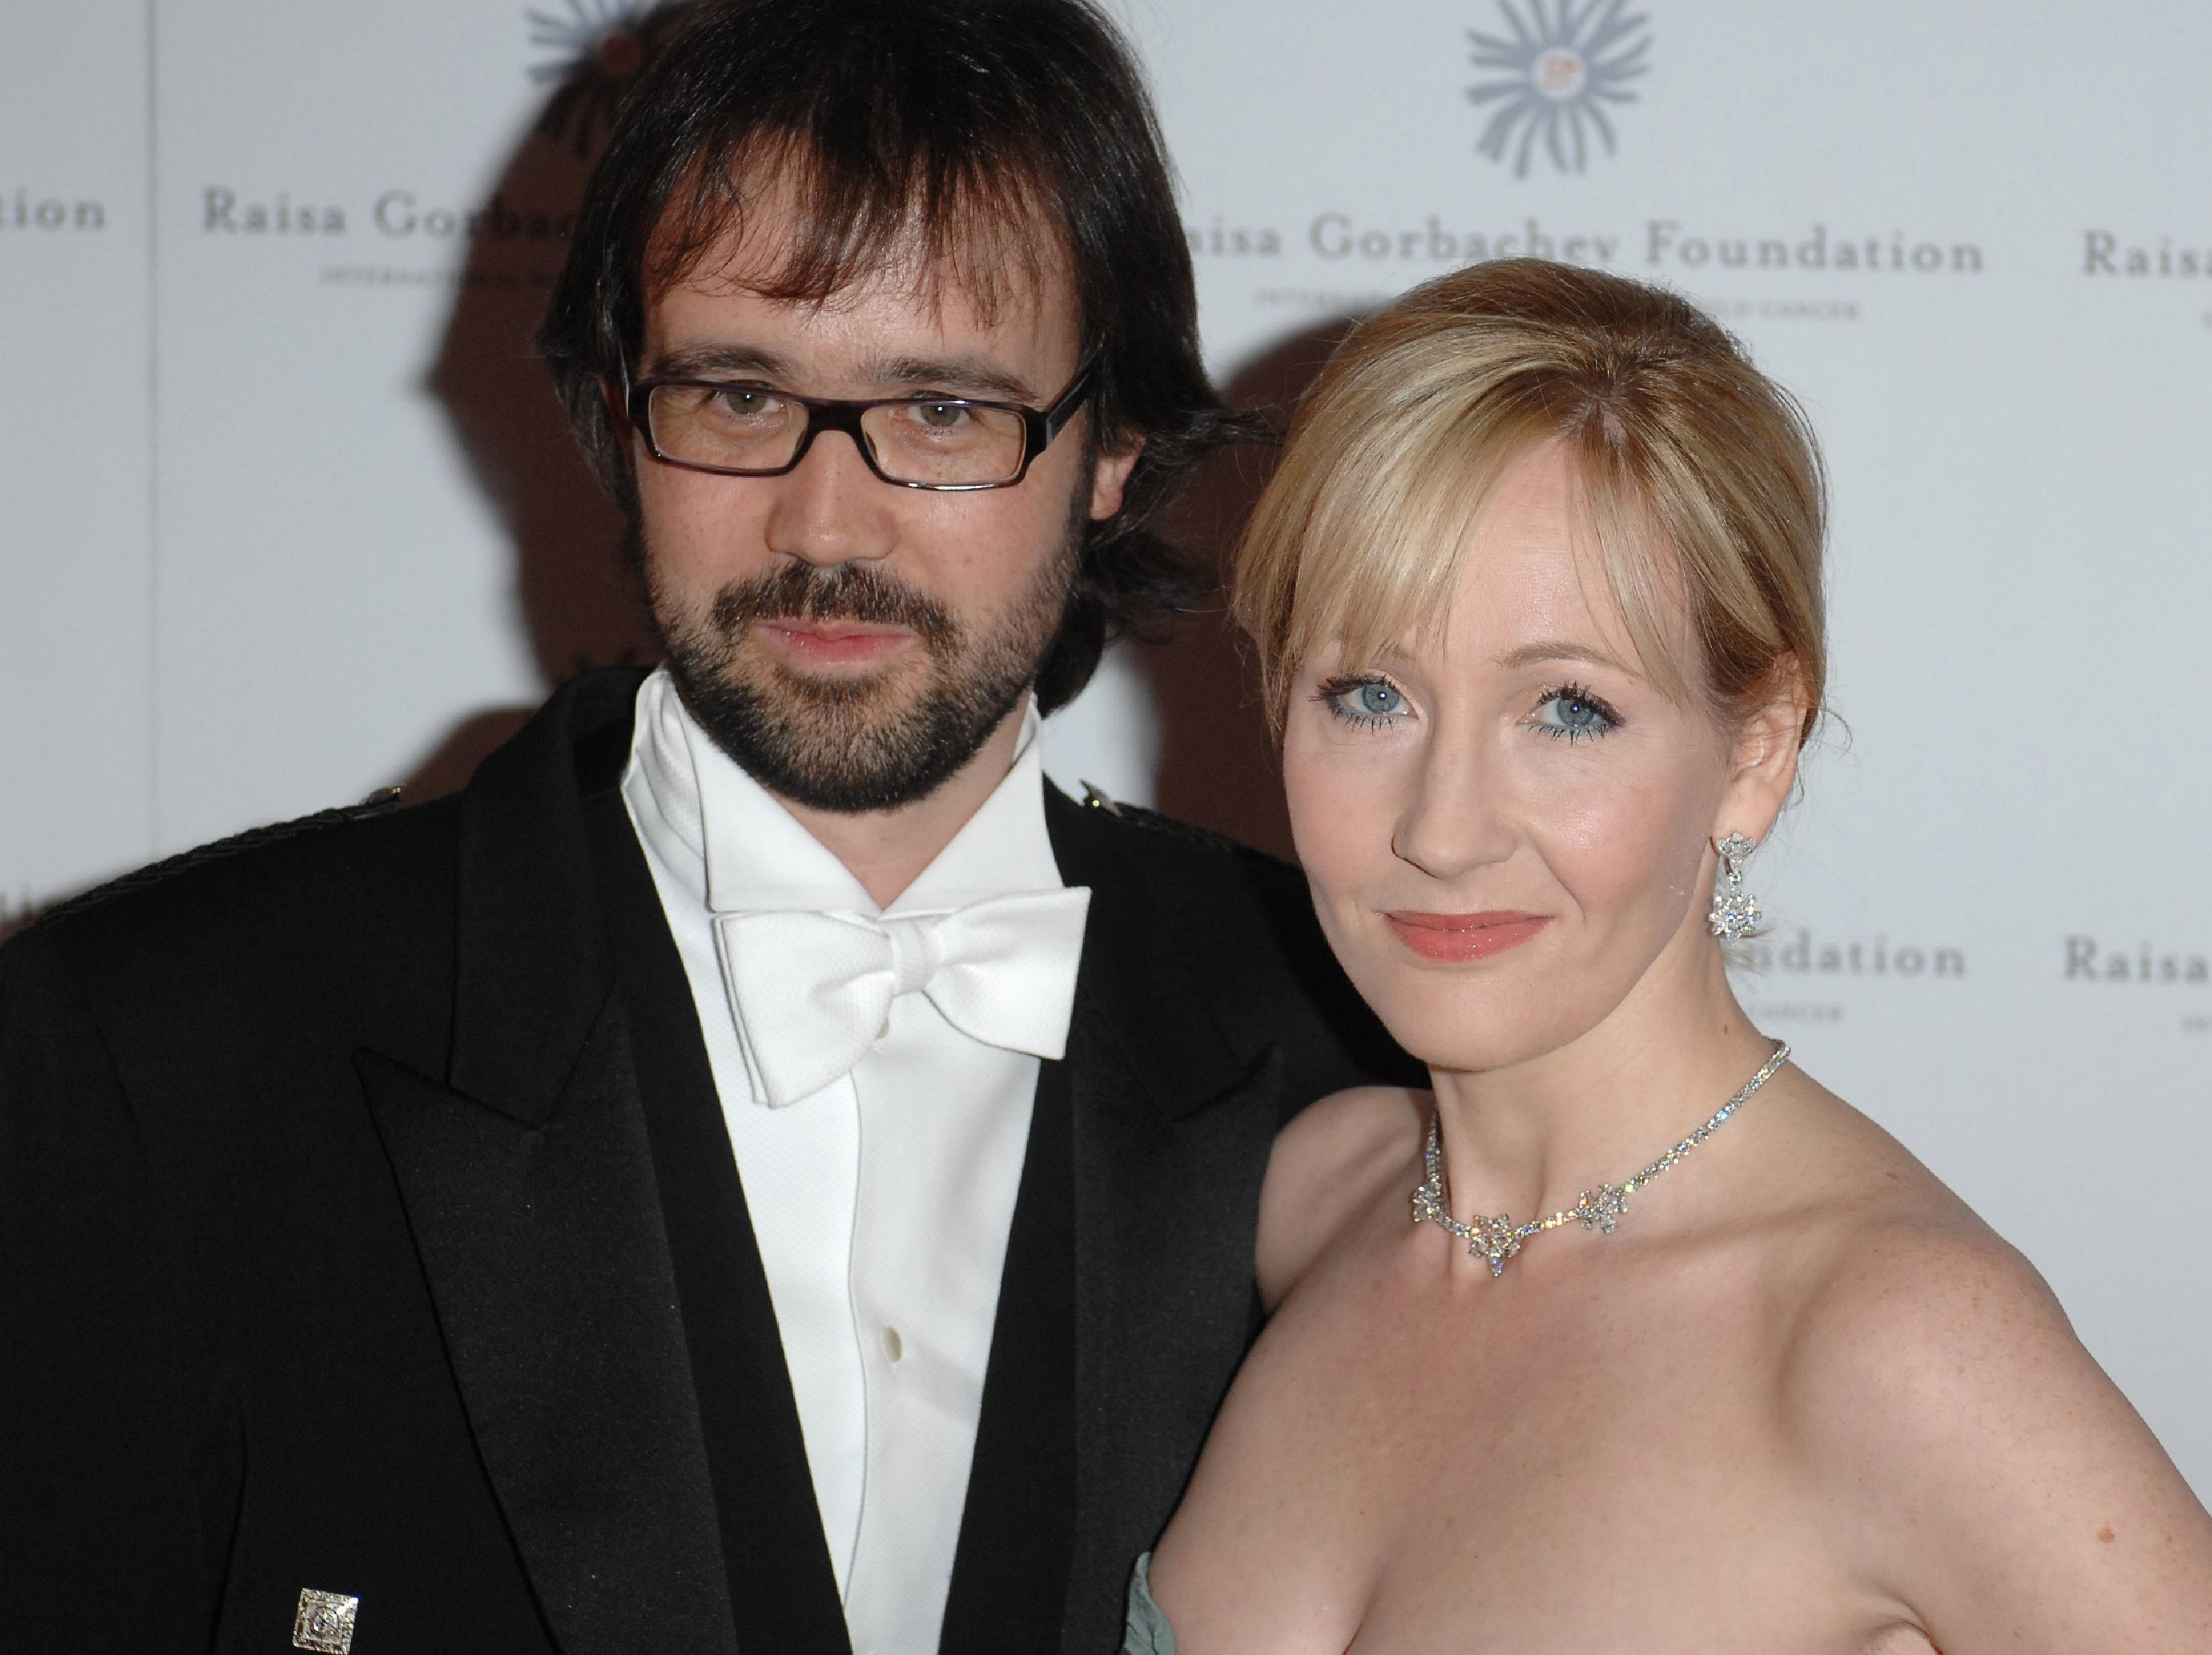 J.K. Rowling and Neil Murray Raisa Gorbachev Foundation Annual Gala Dinner at Hampton Court Palace - Arrivals London, England - 02.06.07  Featuring: J.K. Rowling and Neil Murray Where: London, United Kingdom When: 02 Jun 2007 Credit: Daniel Deme / WENN